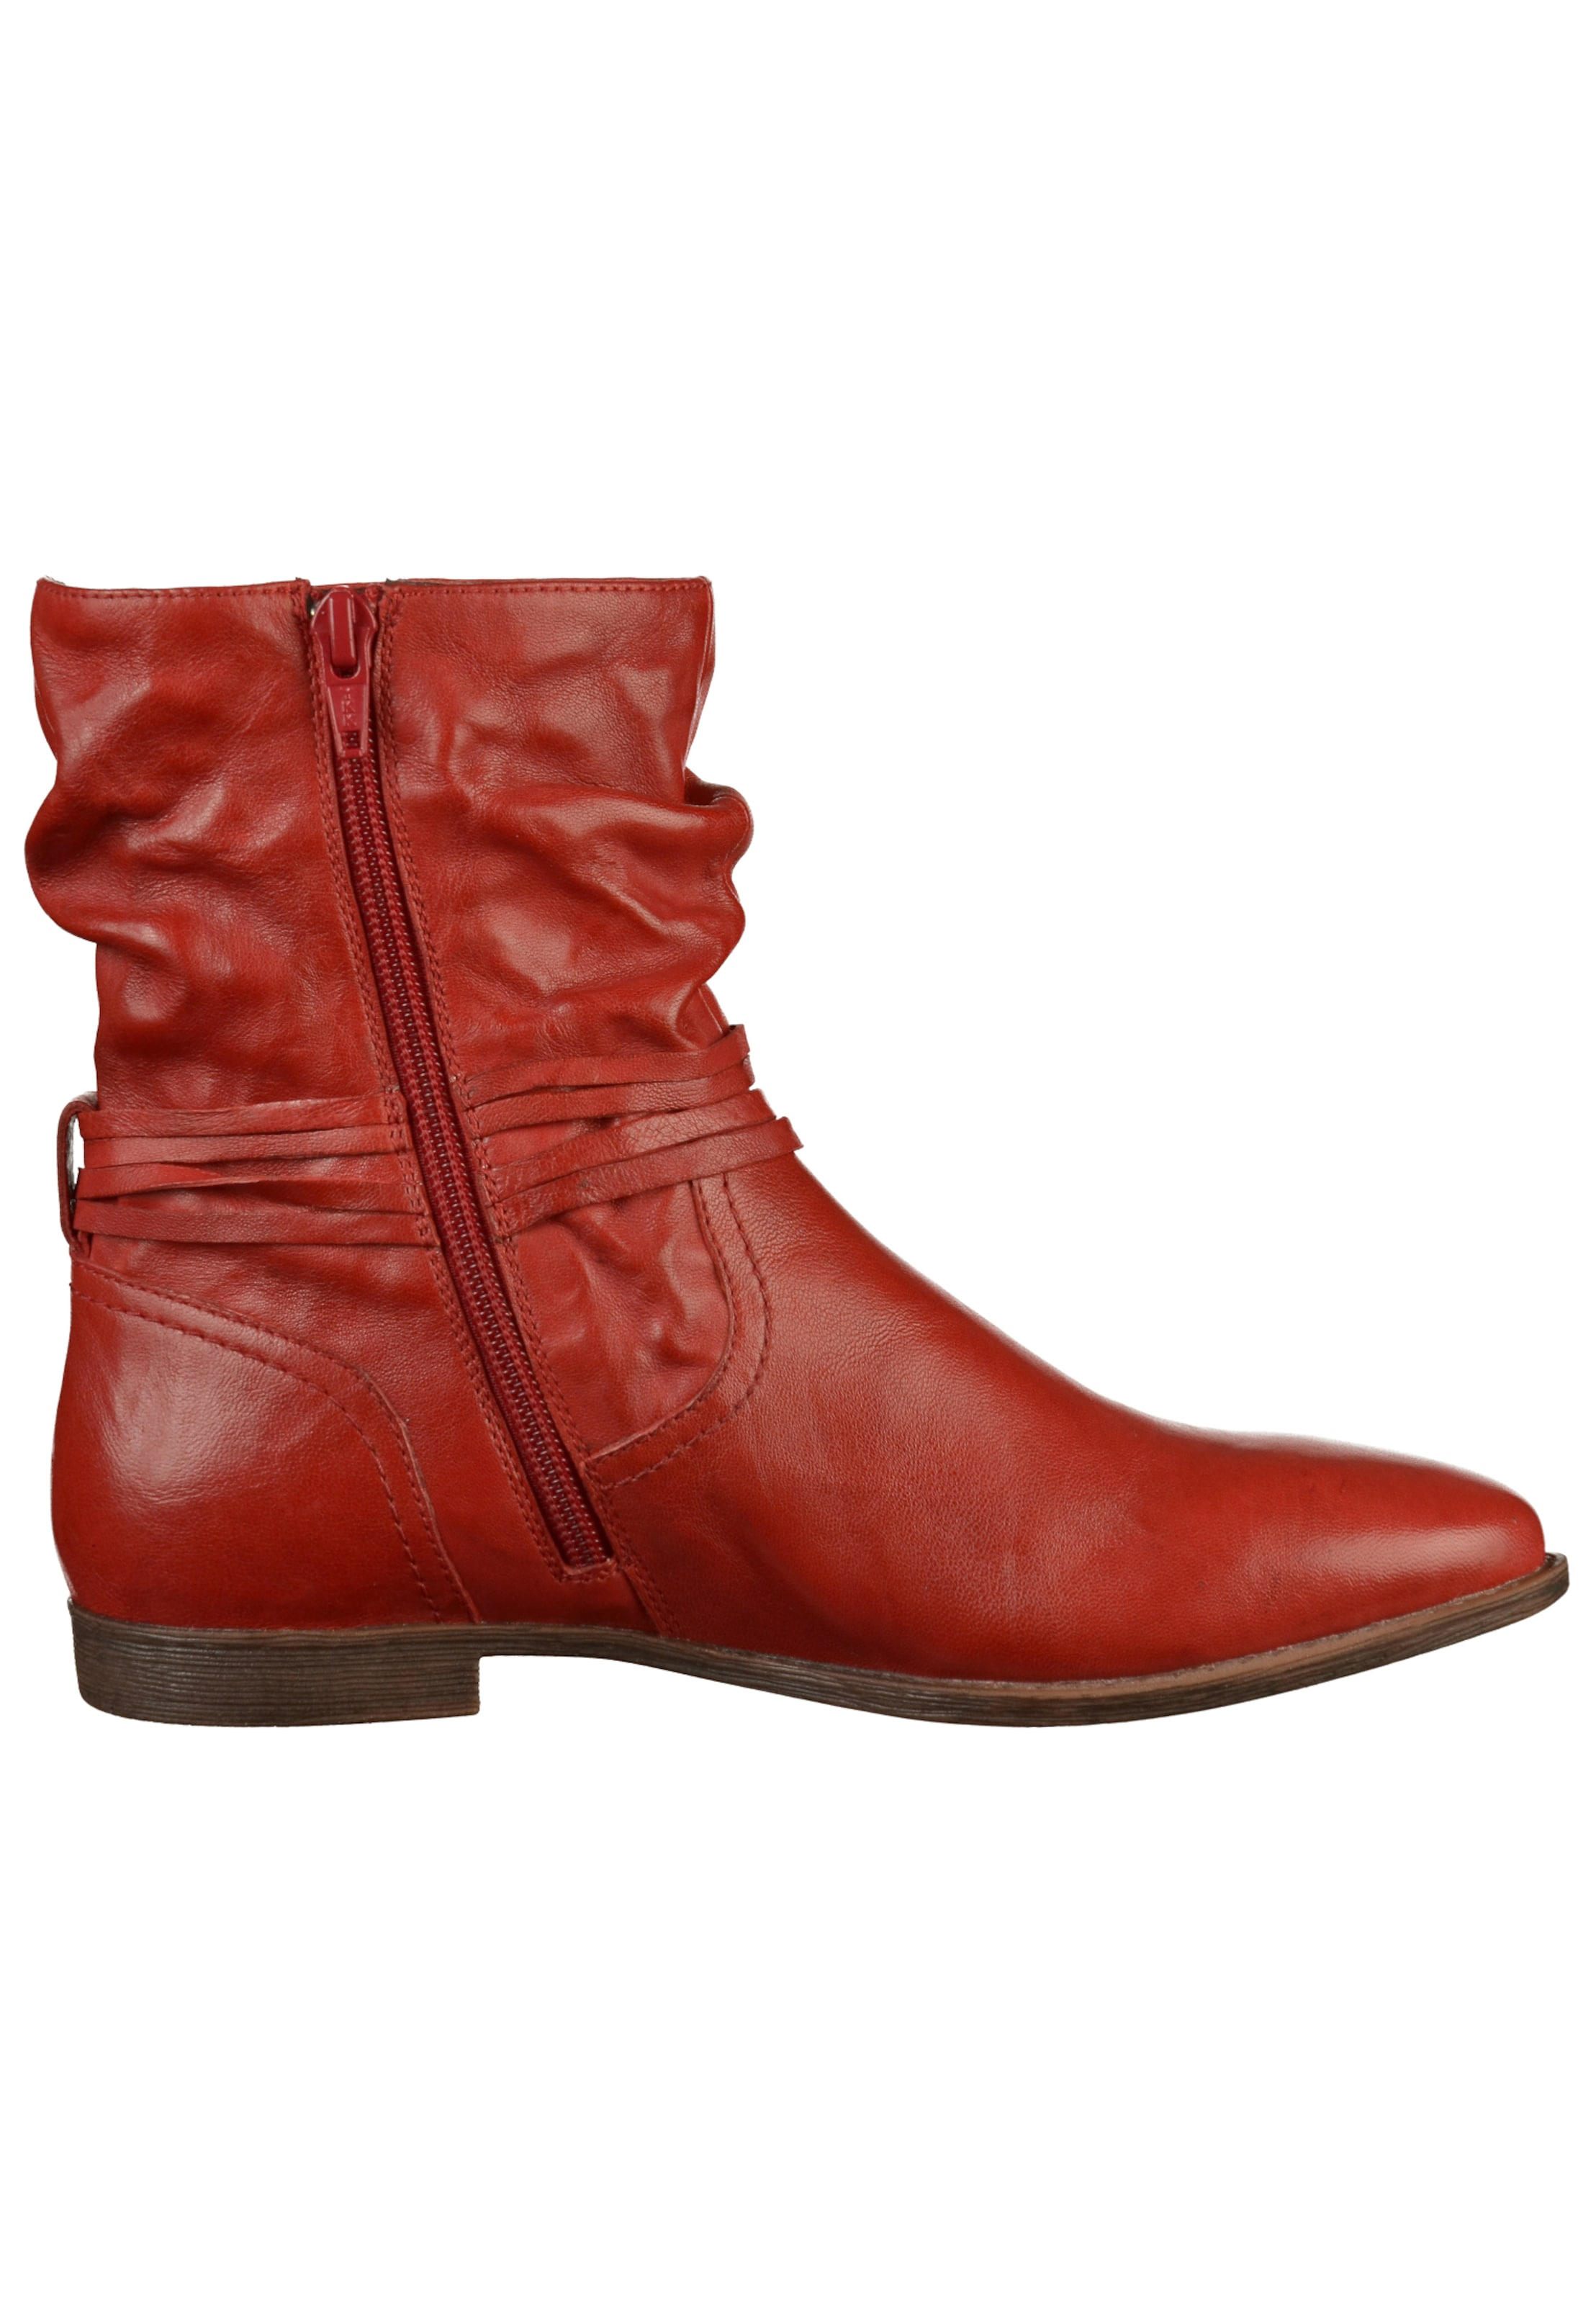 Bottines Spm En 'malistrip' Spm Bottines Rouge Spm Rouge Bottines 'malistrip' En 'malistrip' dxBoerC